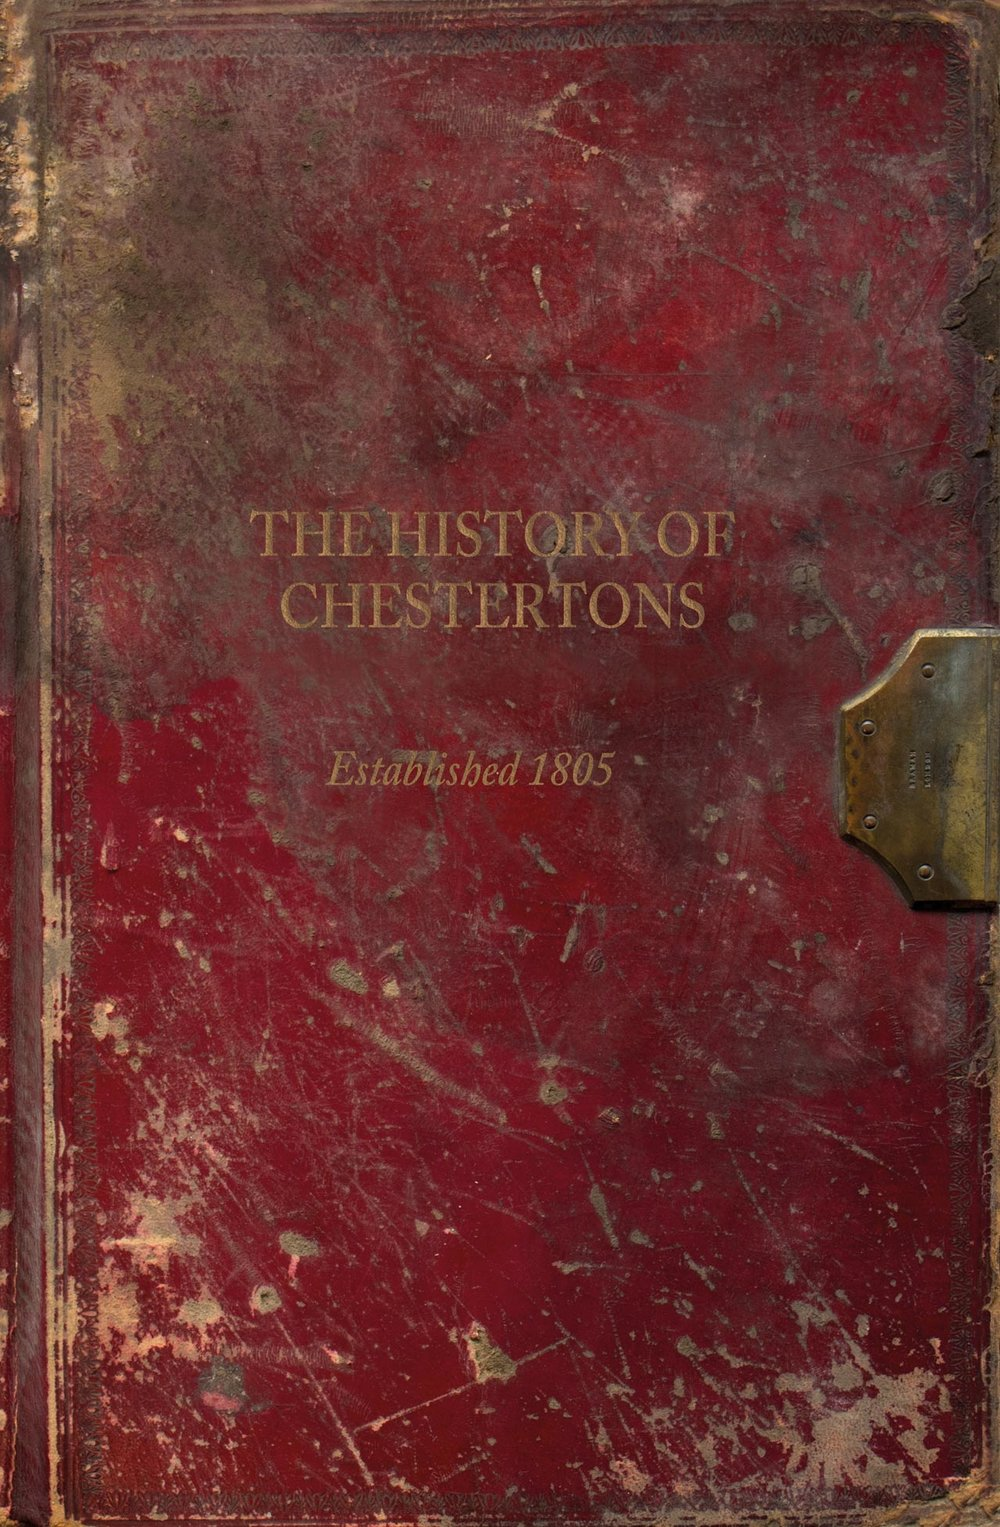 - This History or Chersterons 1805